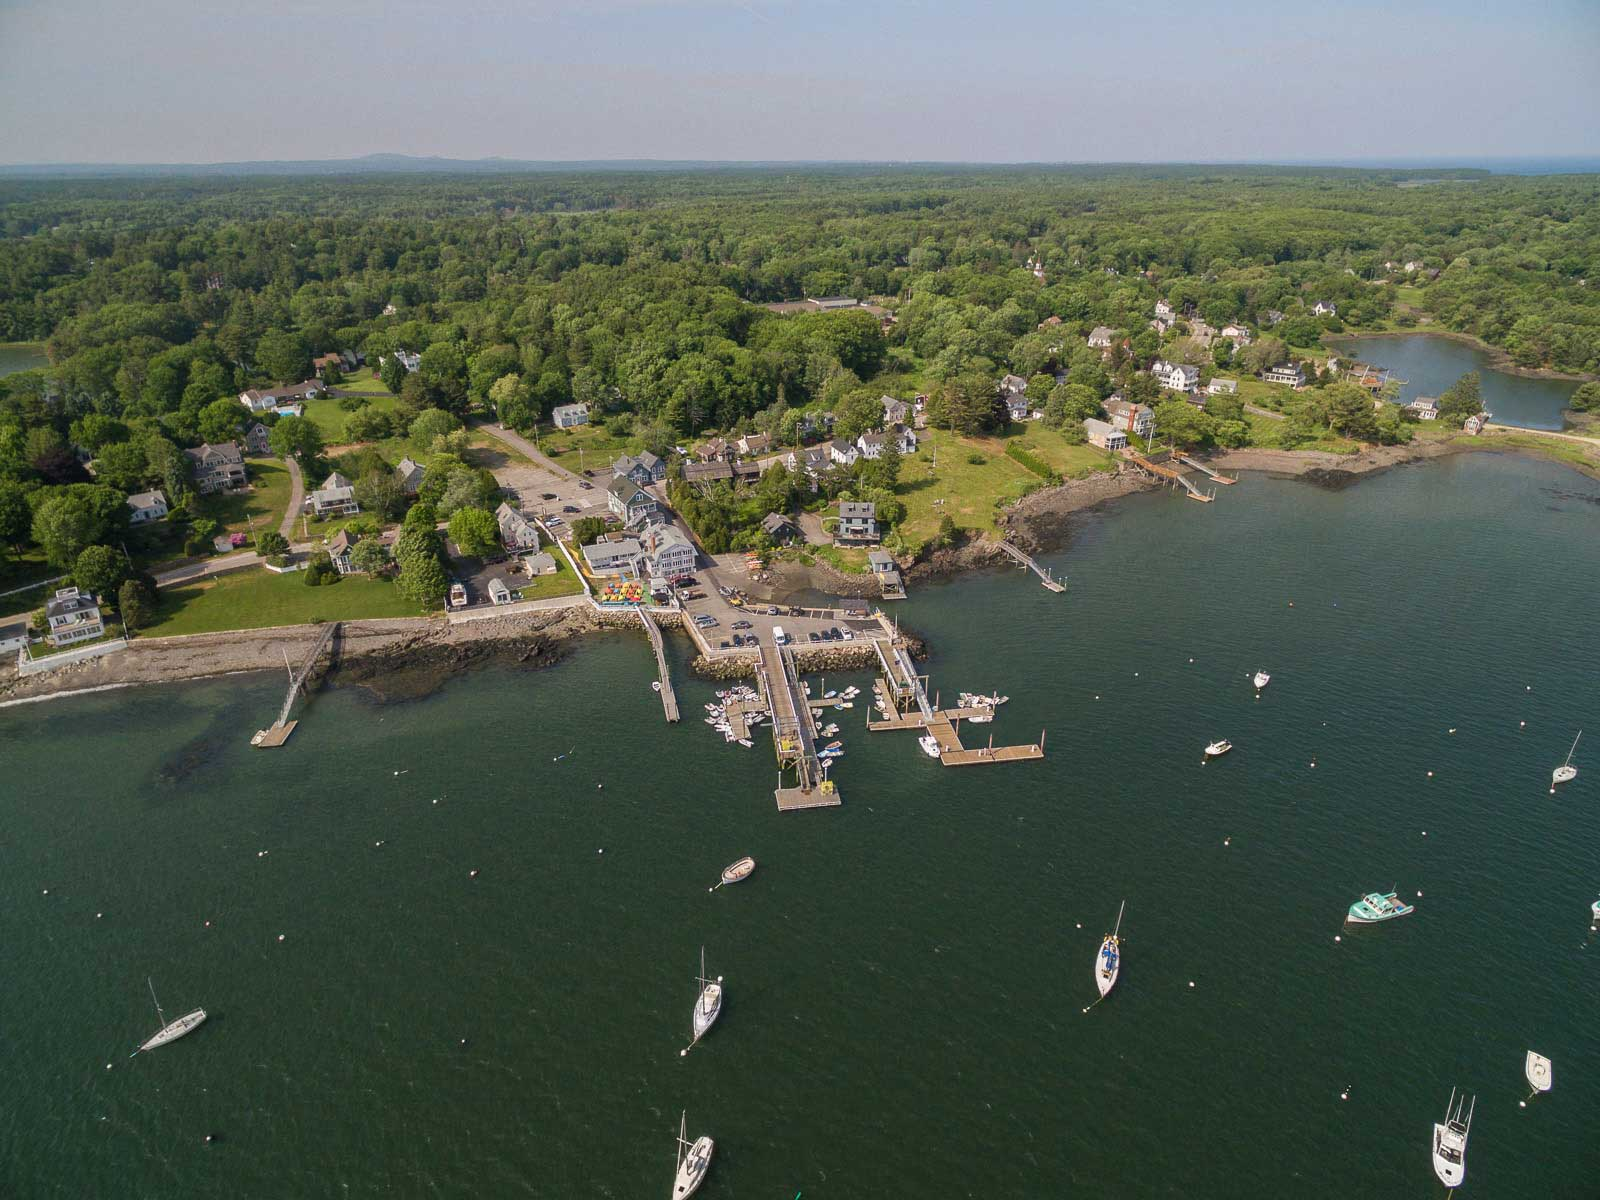 Property For Sale at Waterfront Development in Kittery Point